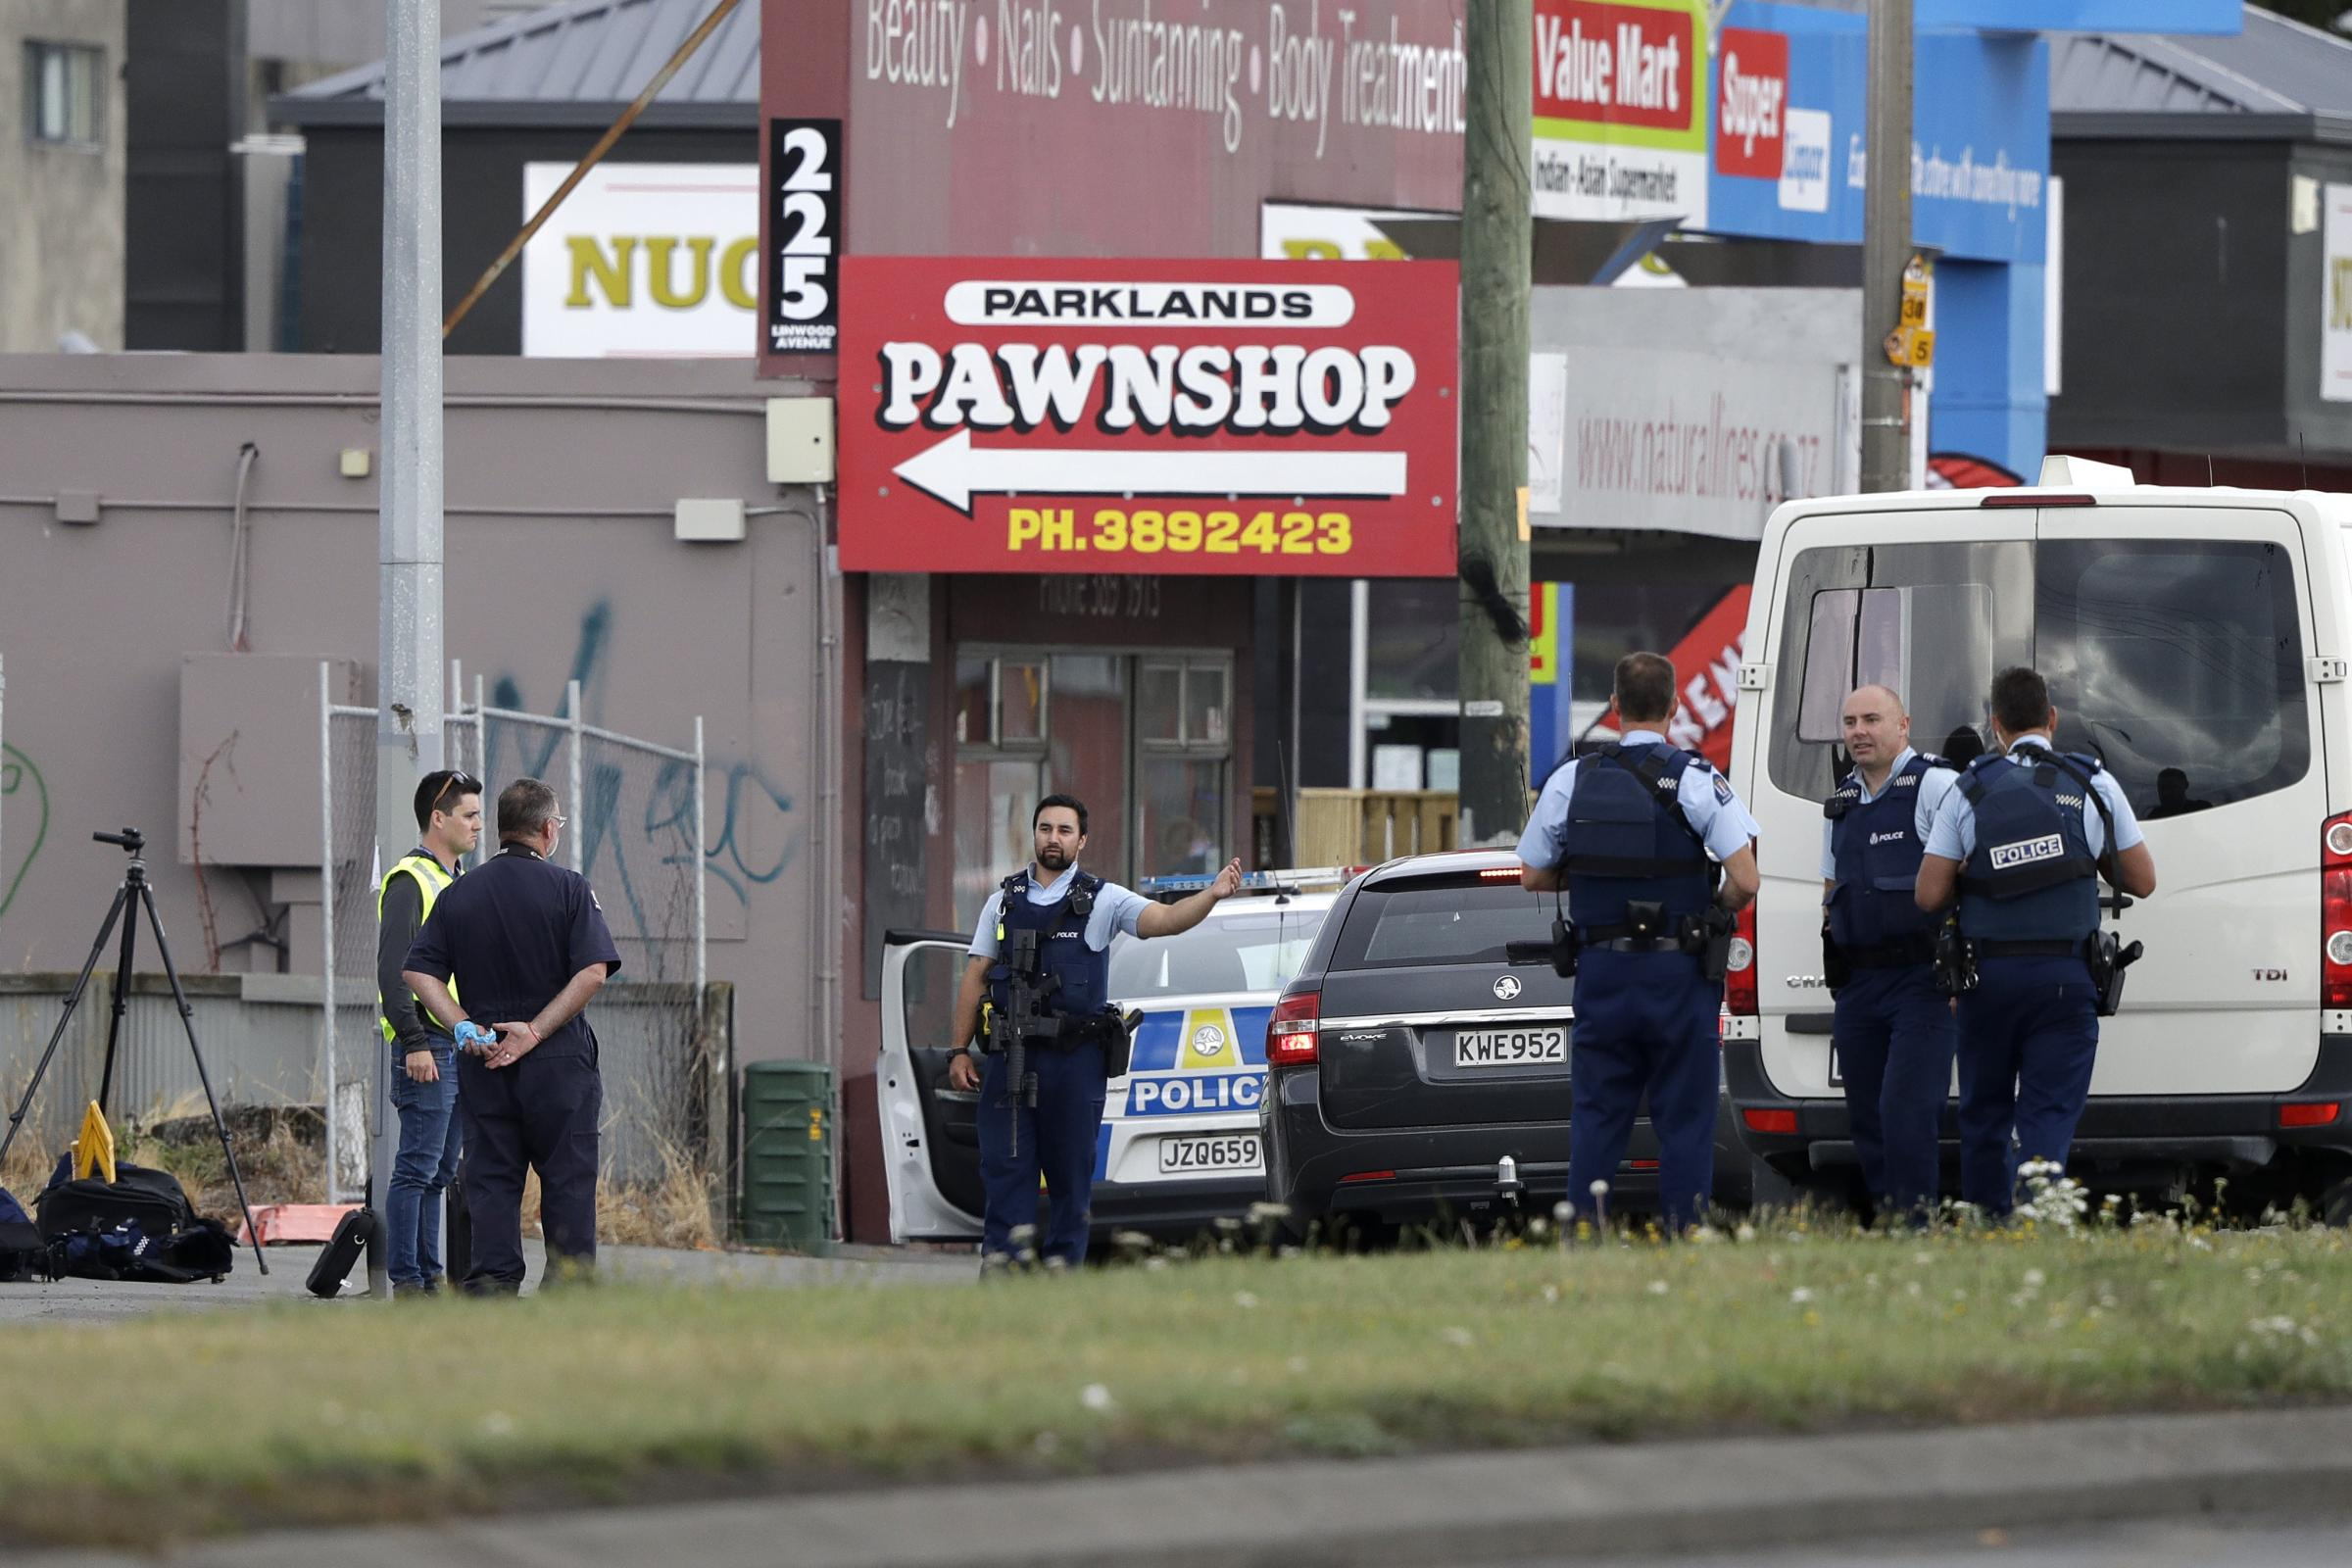 The scene of one of the attacks at a mosque in Linwood, Christchurch